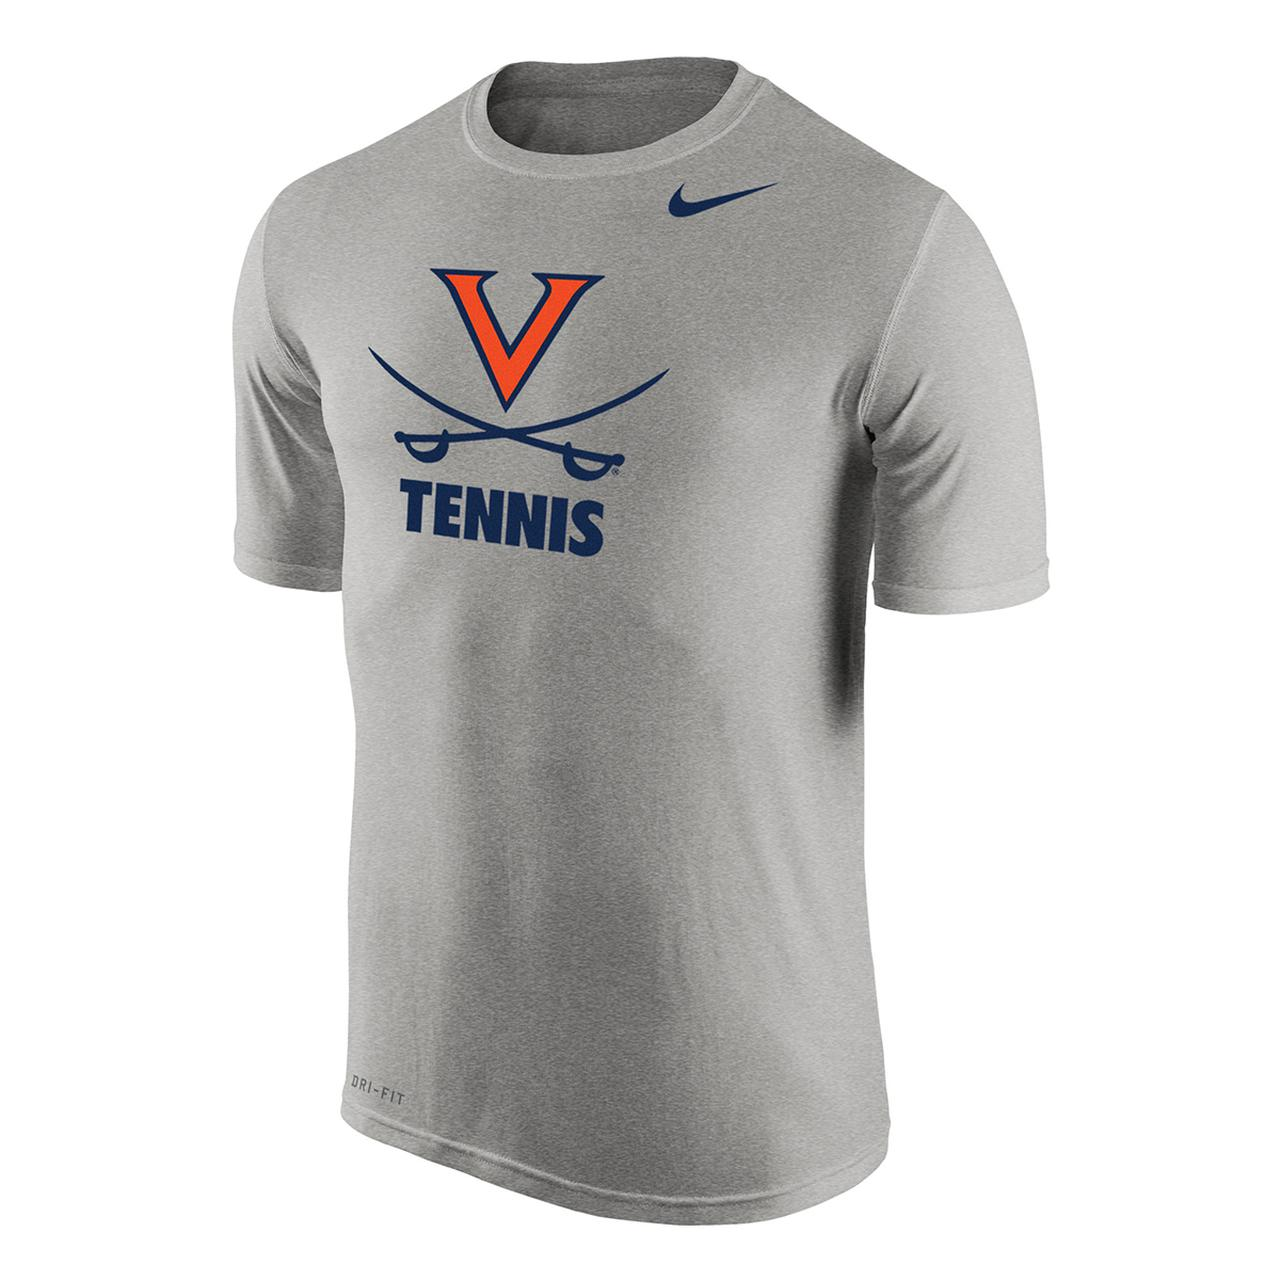 UVA Athletics University of Virginia Tennis NIKE Dri-Fit T-shirt 4cafdff95cee